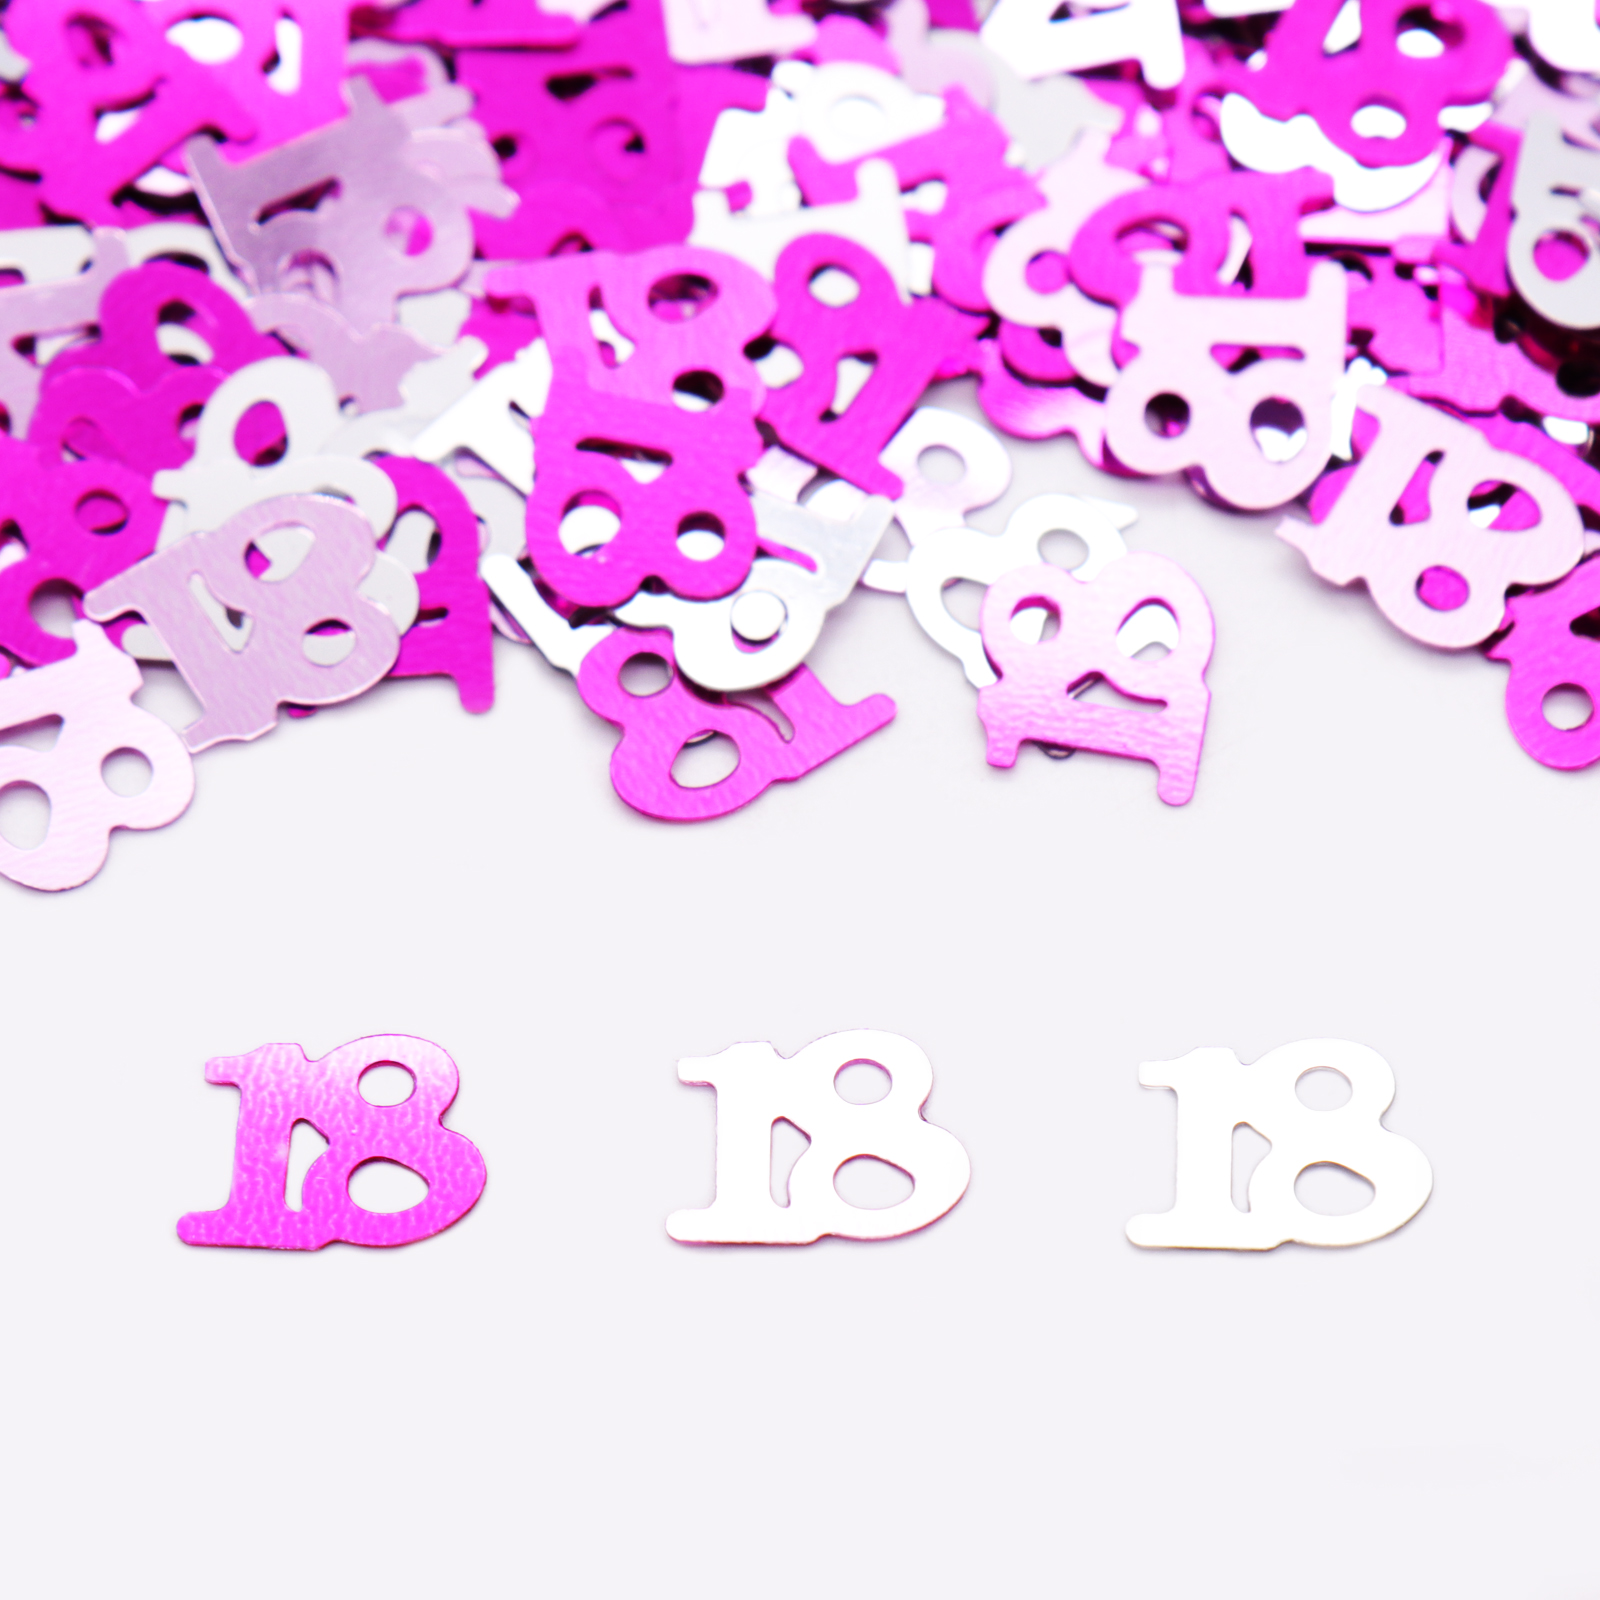 15g/bag Pink Happy birthday party letter <font><b>confetti</b></font> 16,18,20,<font><b>30</b></font>,60,80 number acrylic <font><b>confetti</b></font> birthday party wedding decorations image